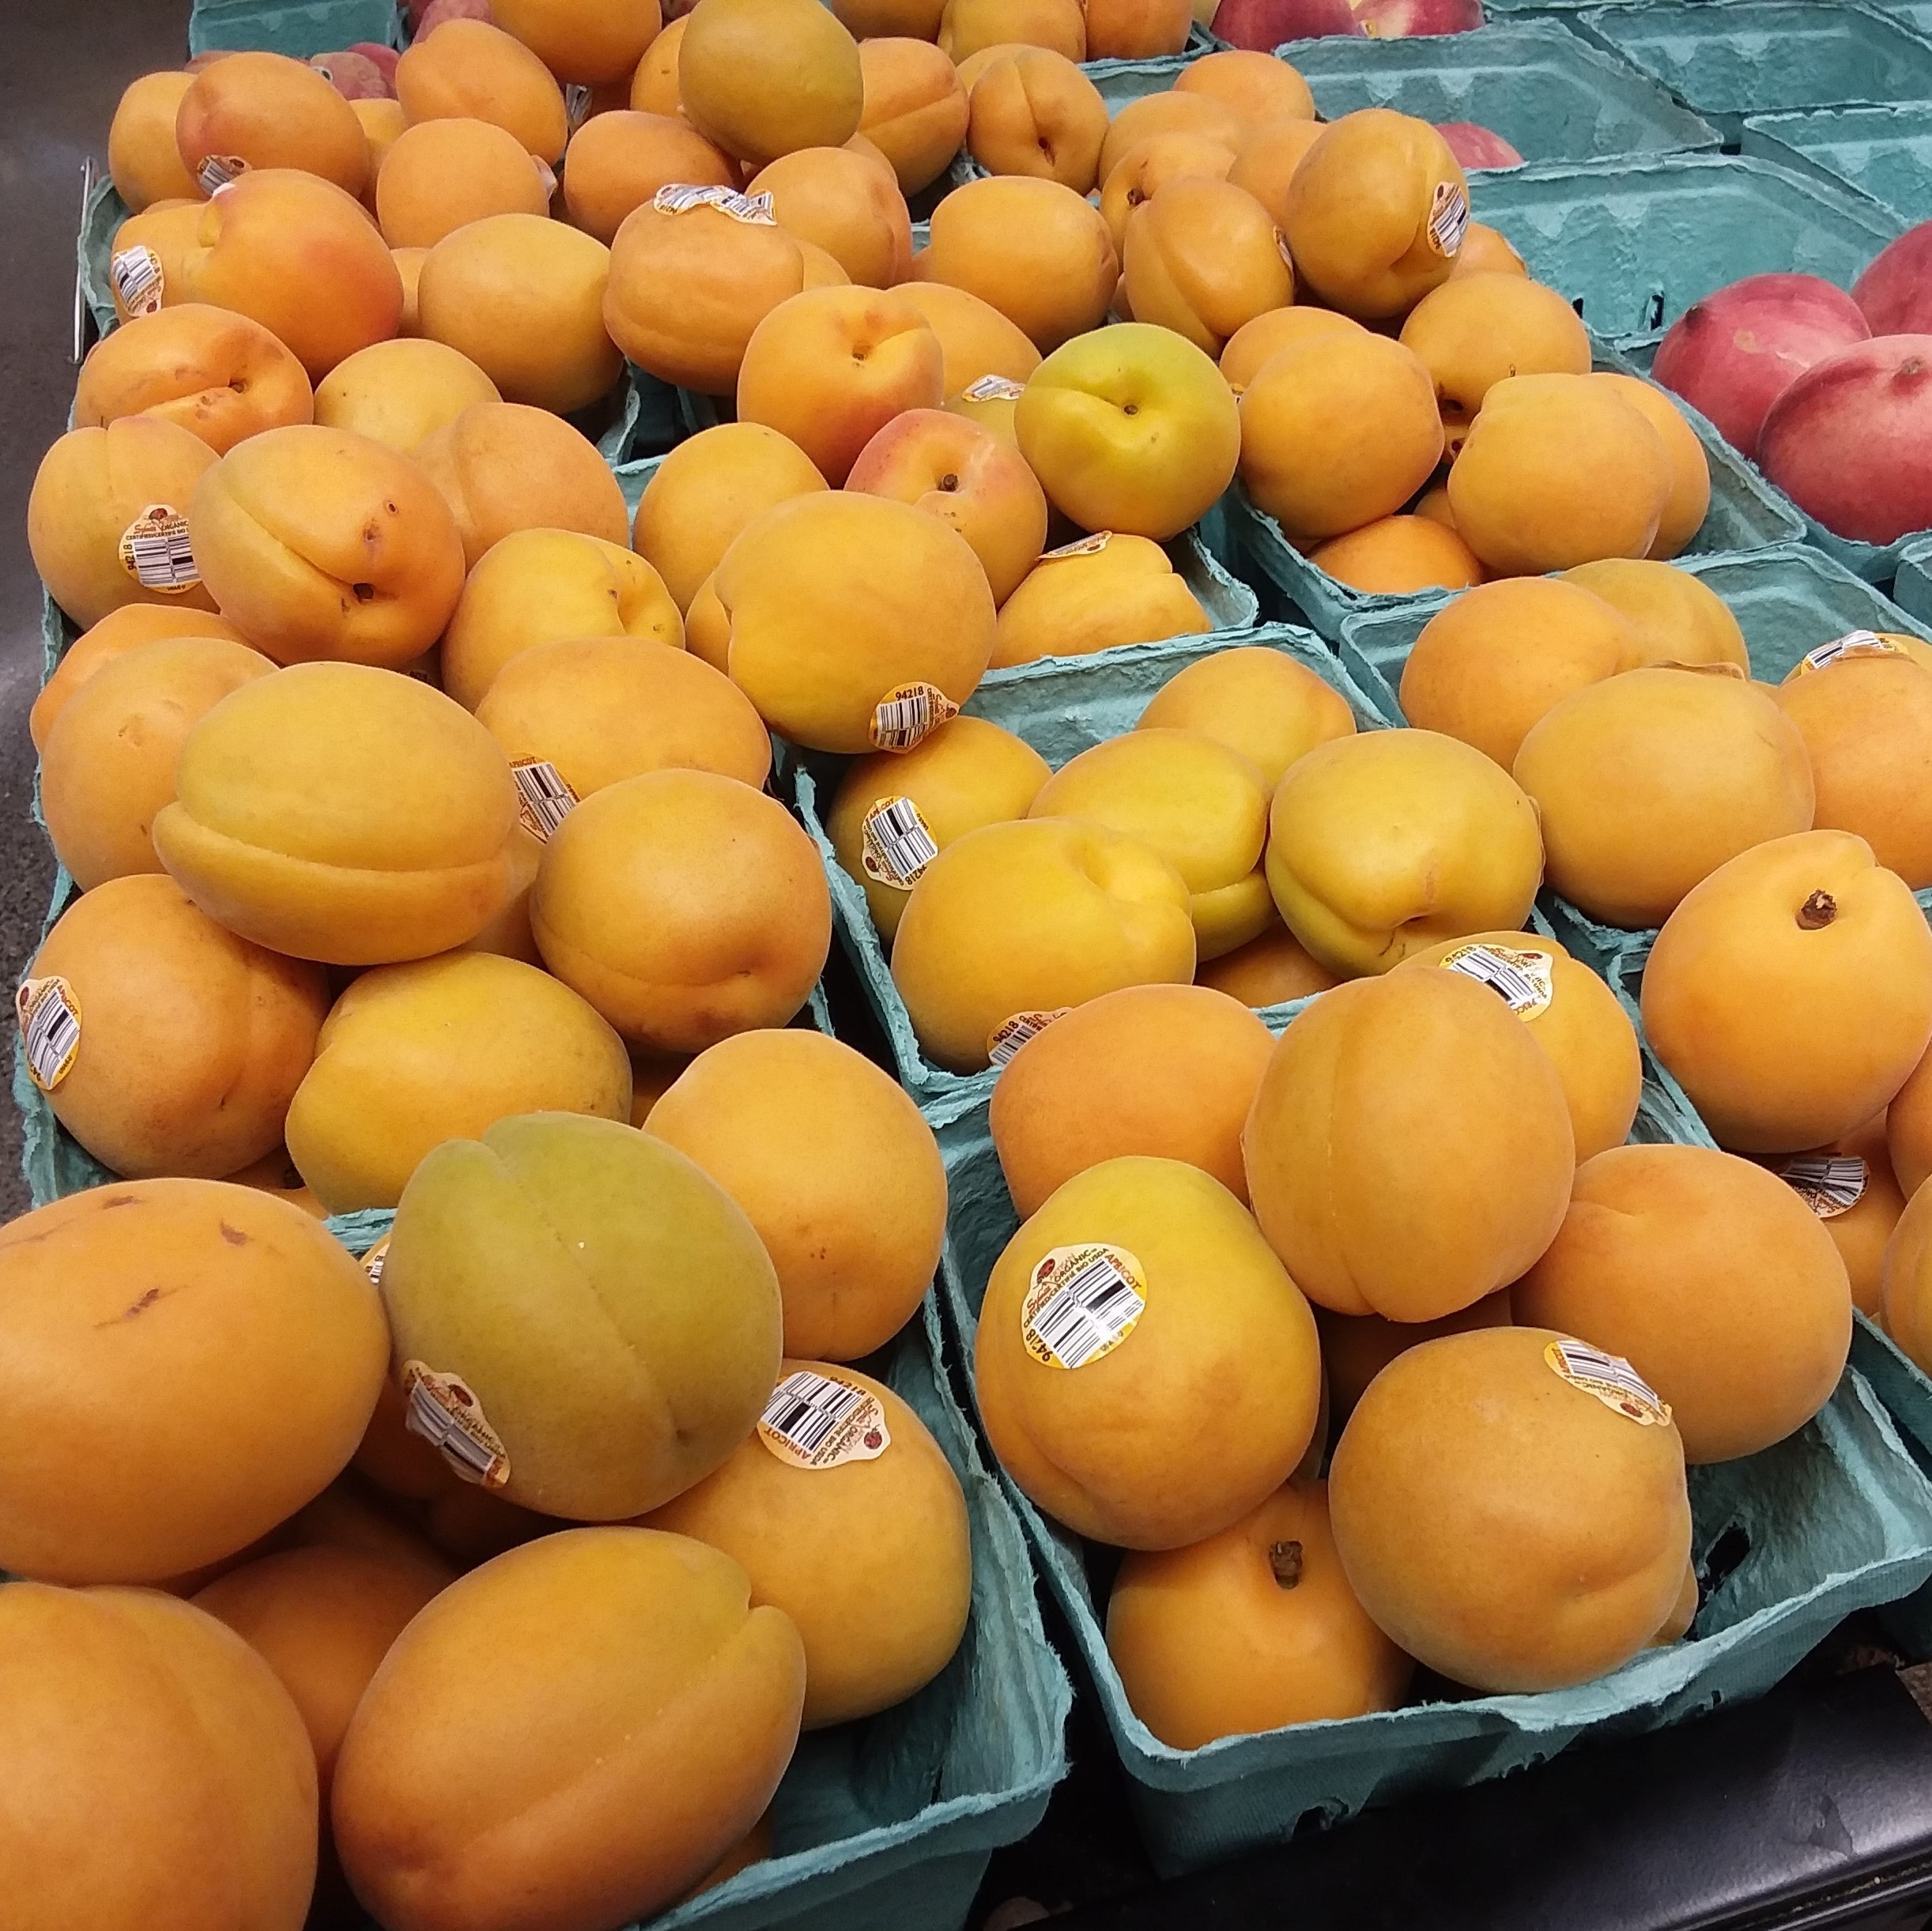 Apricots Displayed At Grocery Store